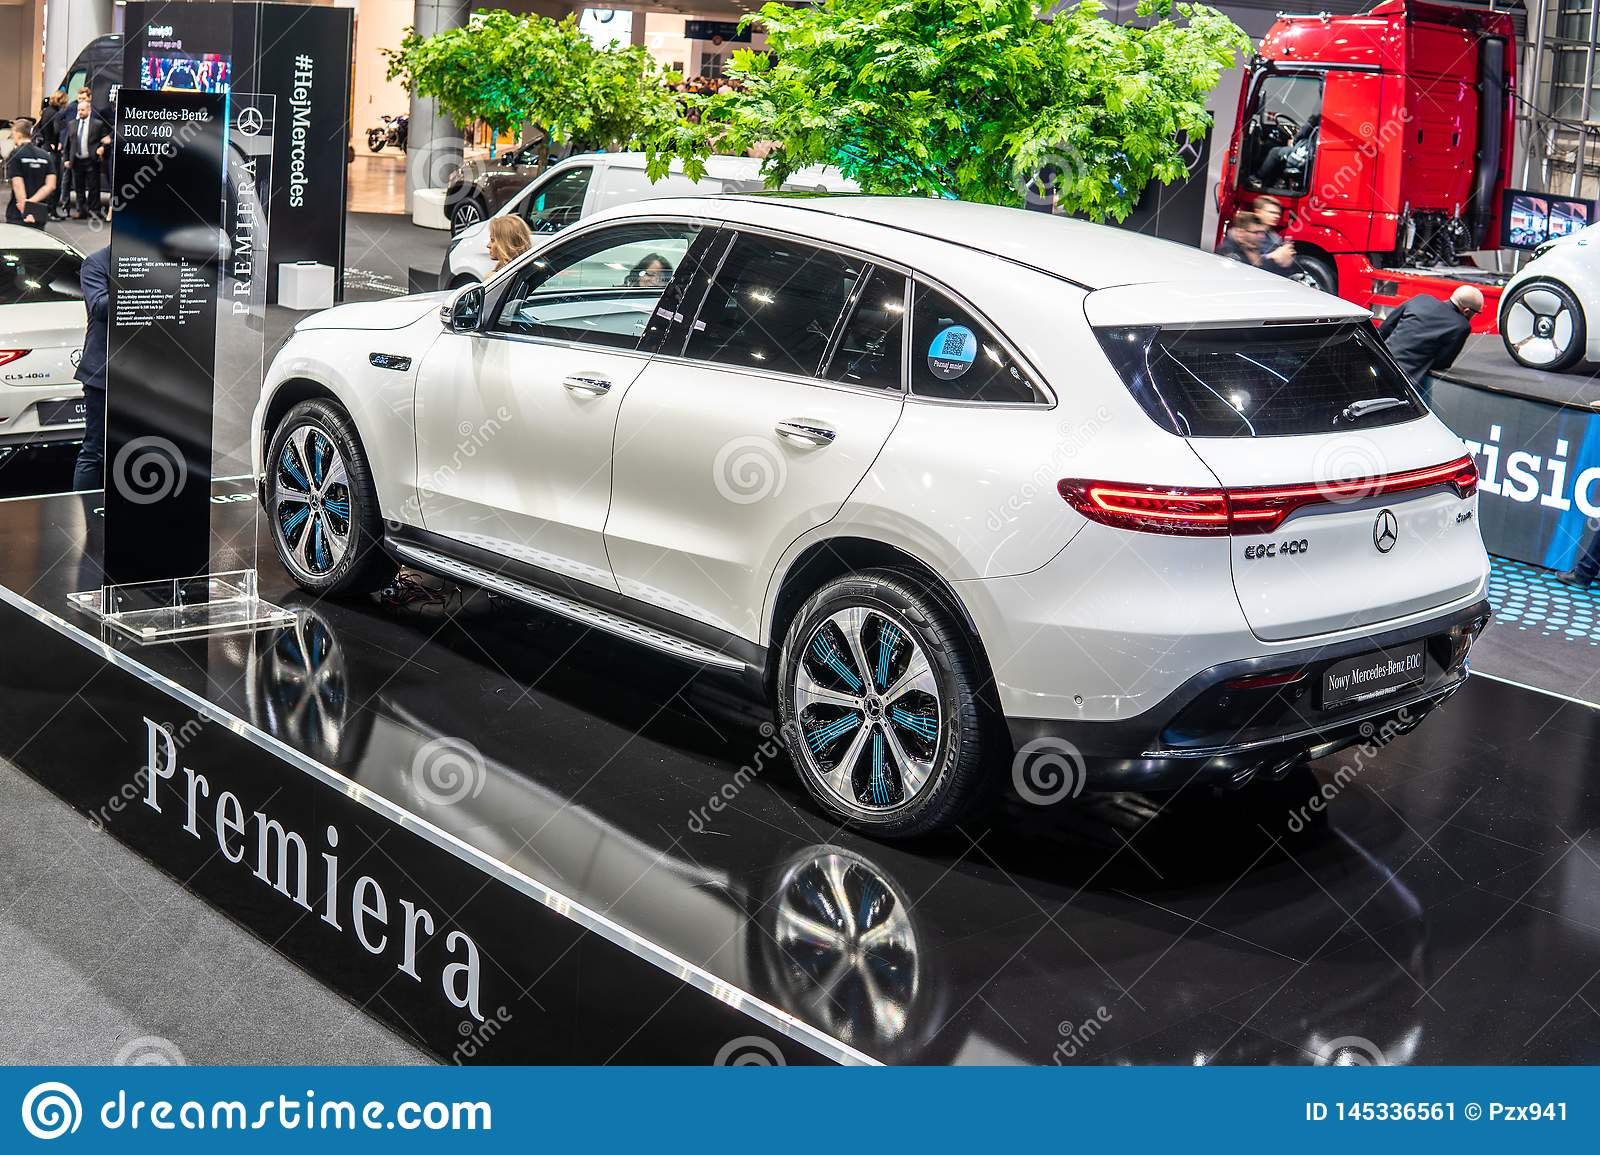 Mercedes Benz Eqc 400 4matic 300kw Suv 2019 Model Year Eq Brand Editorial Photo Image Of Motorshow Technology 145336561